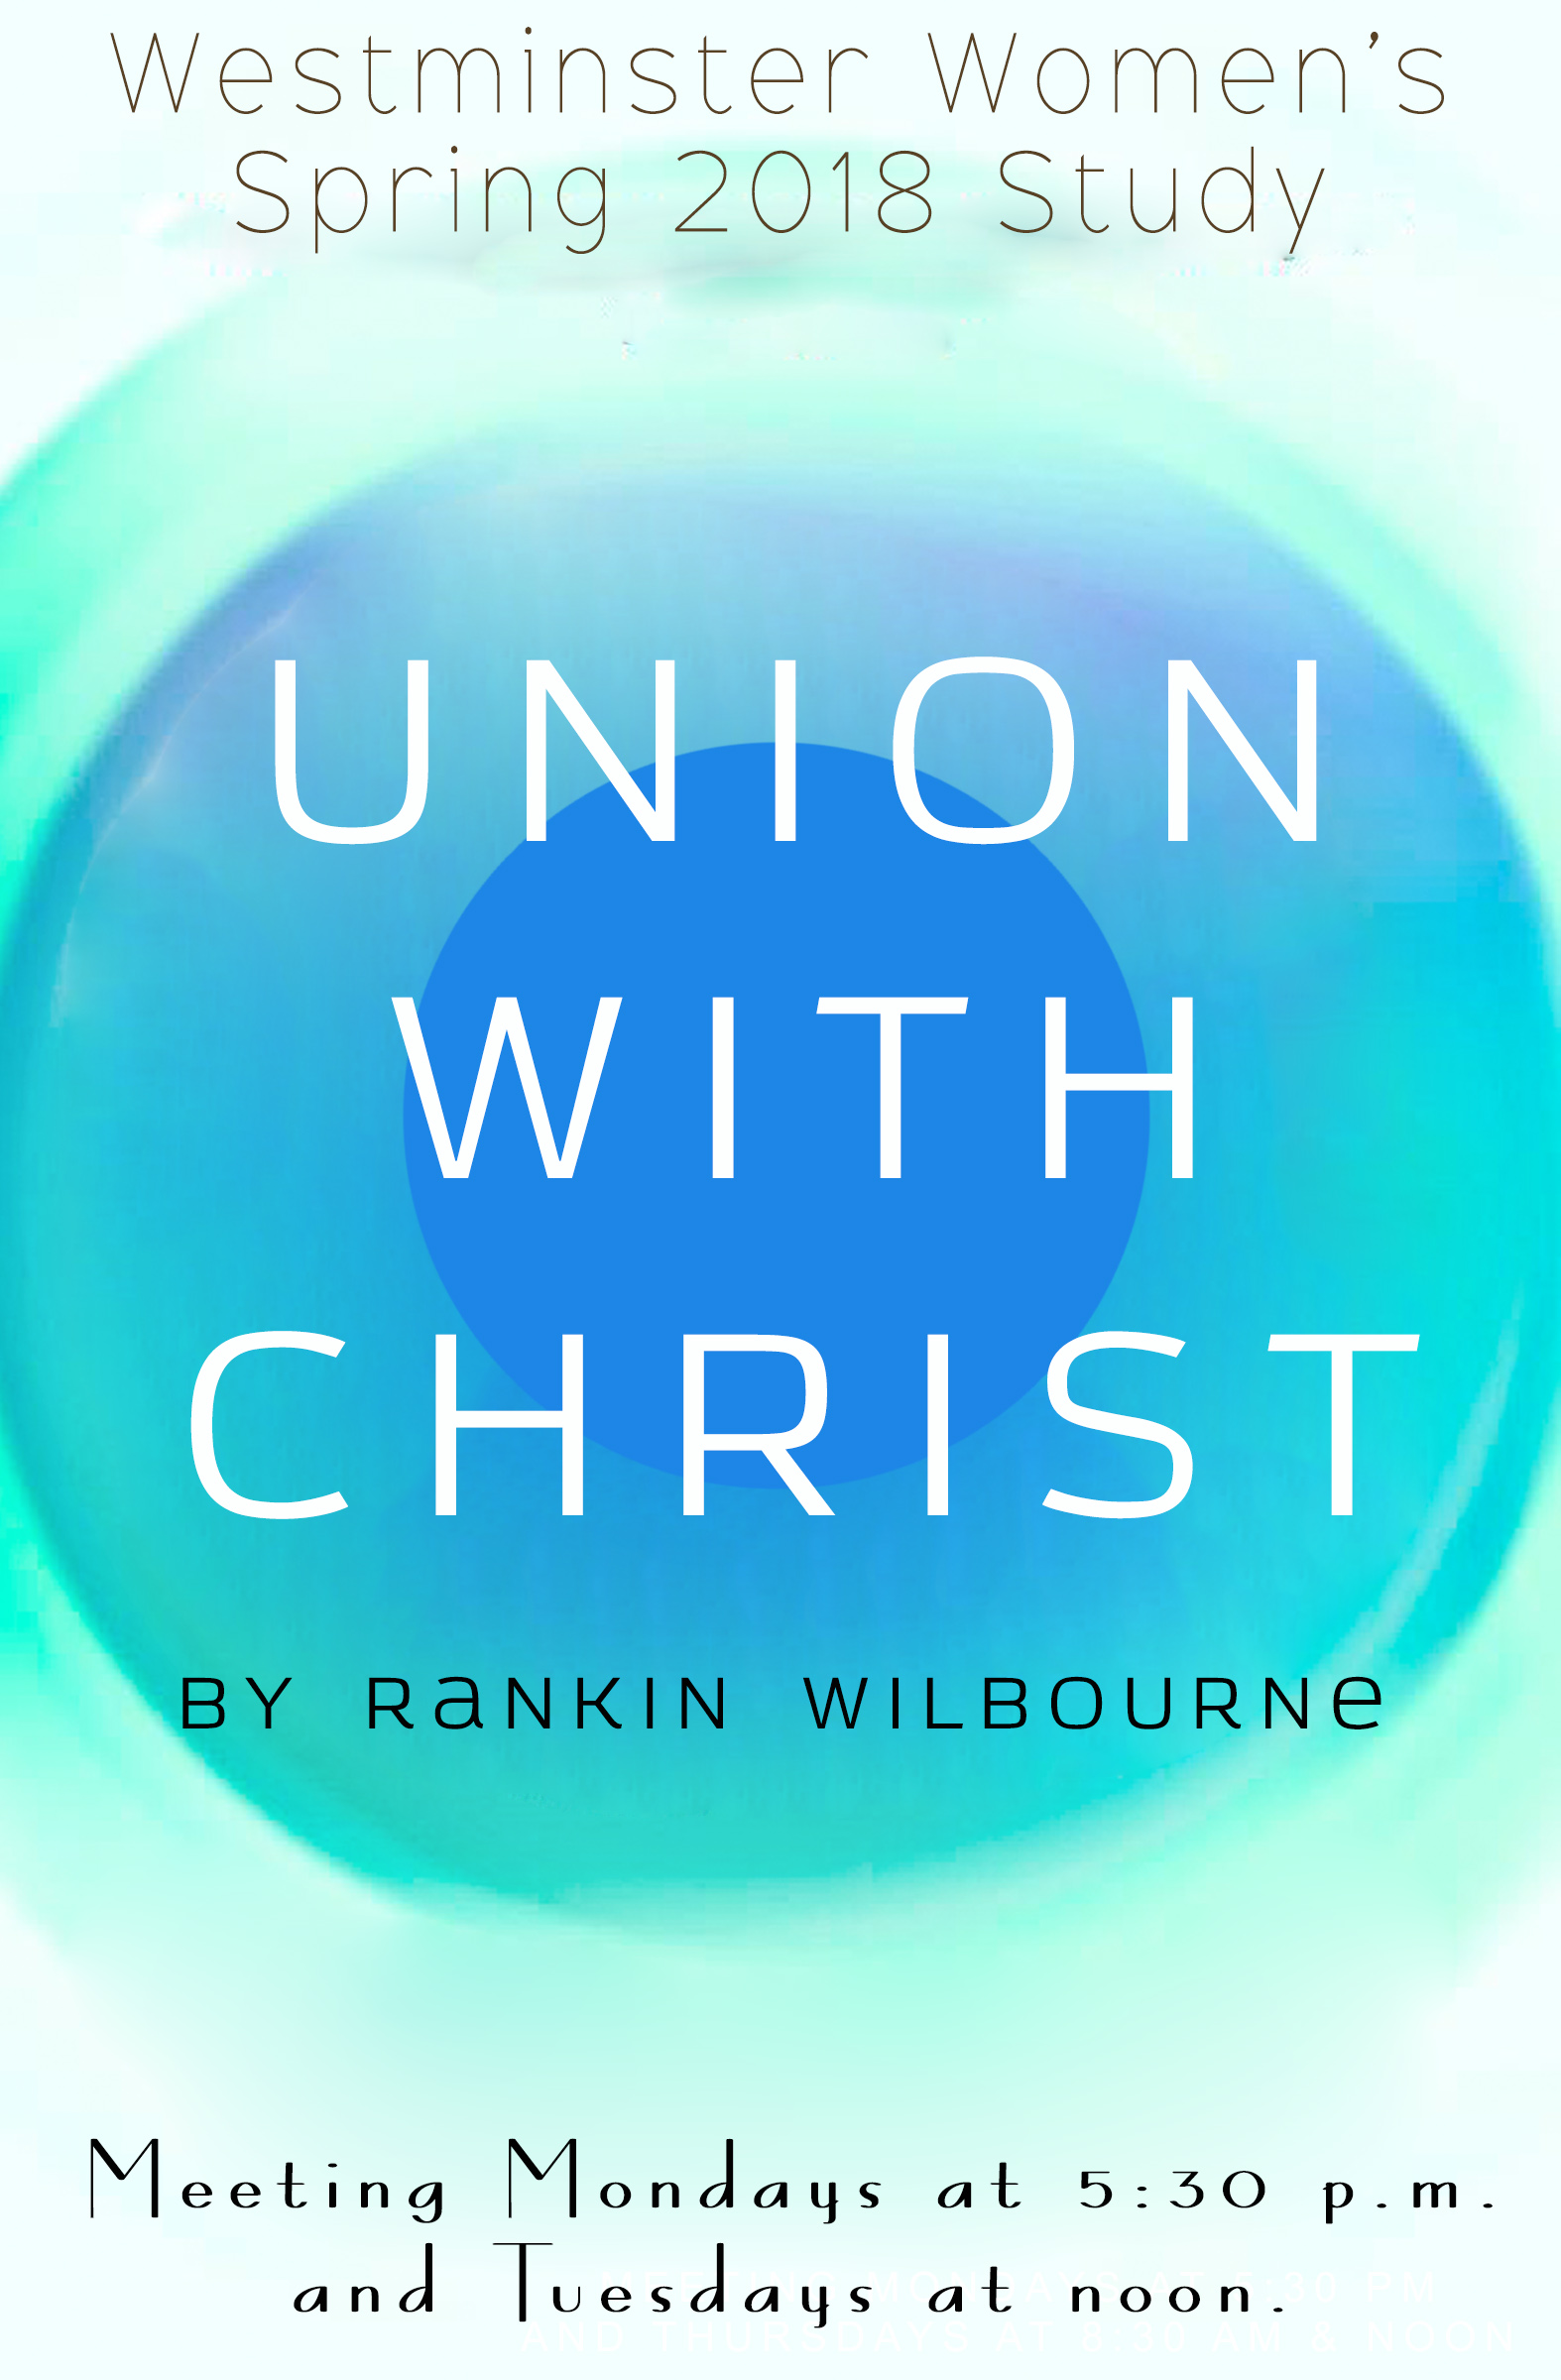 Union with Christ Poster Update